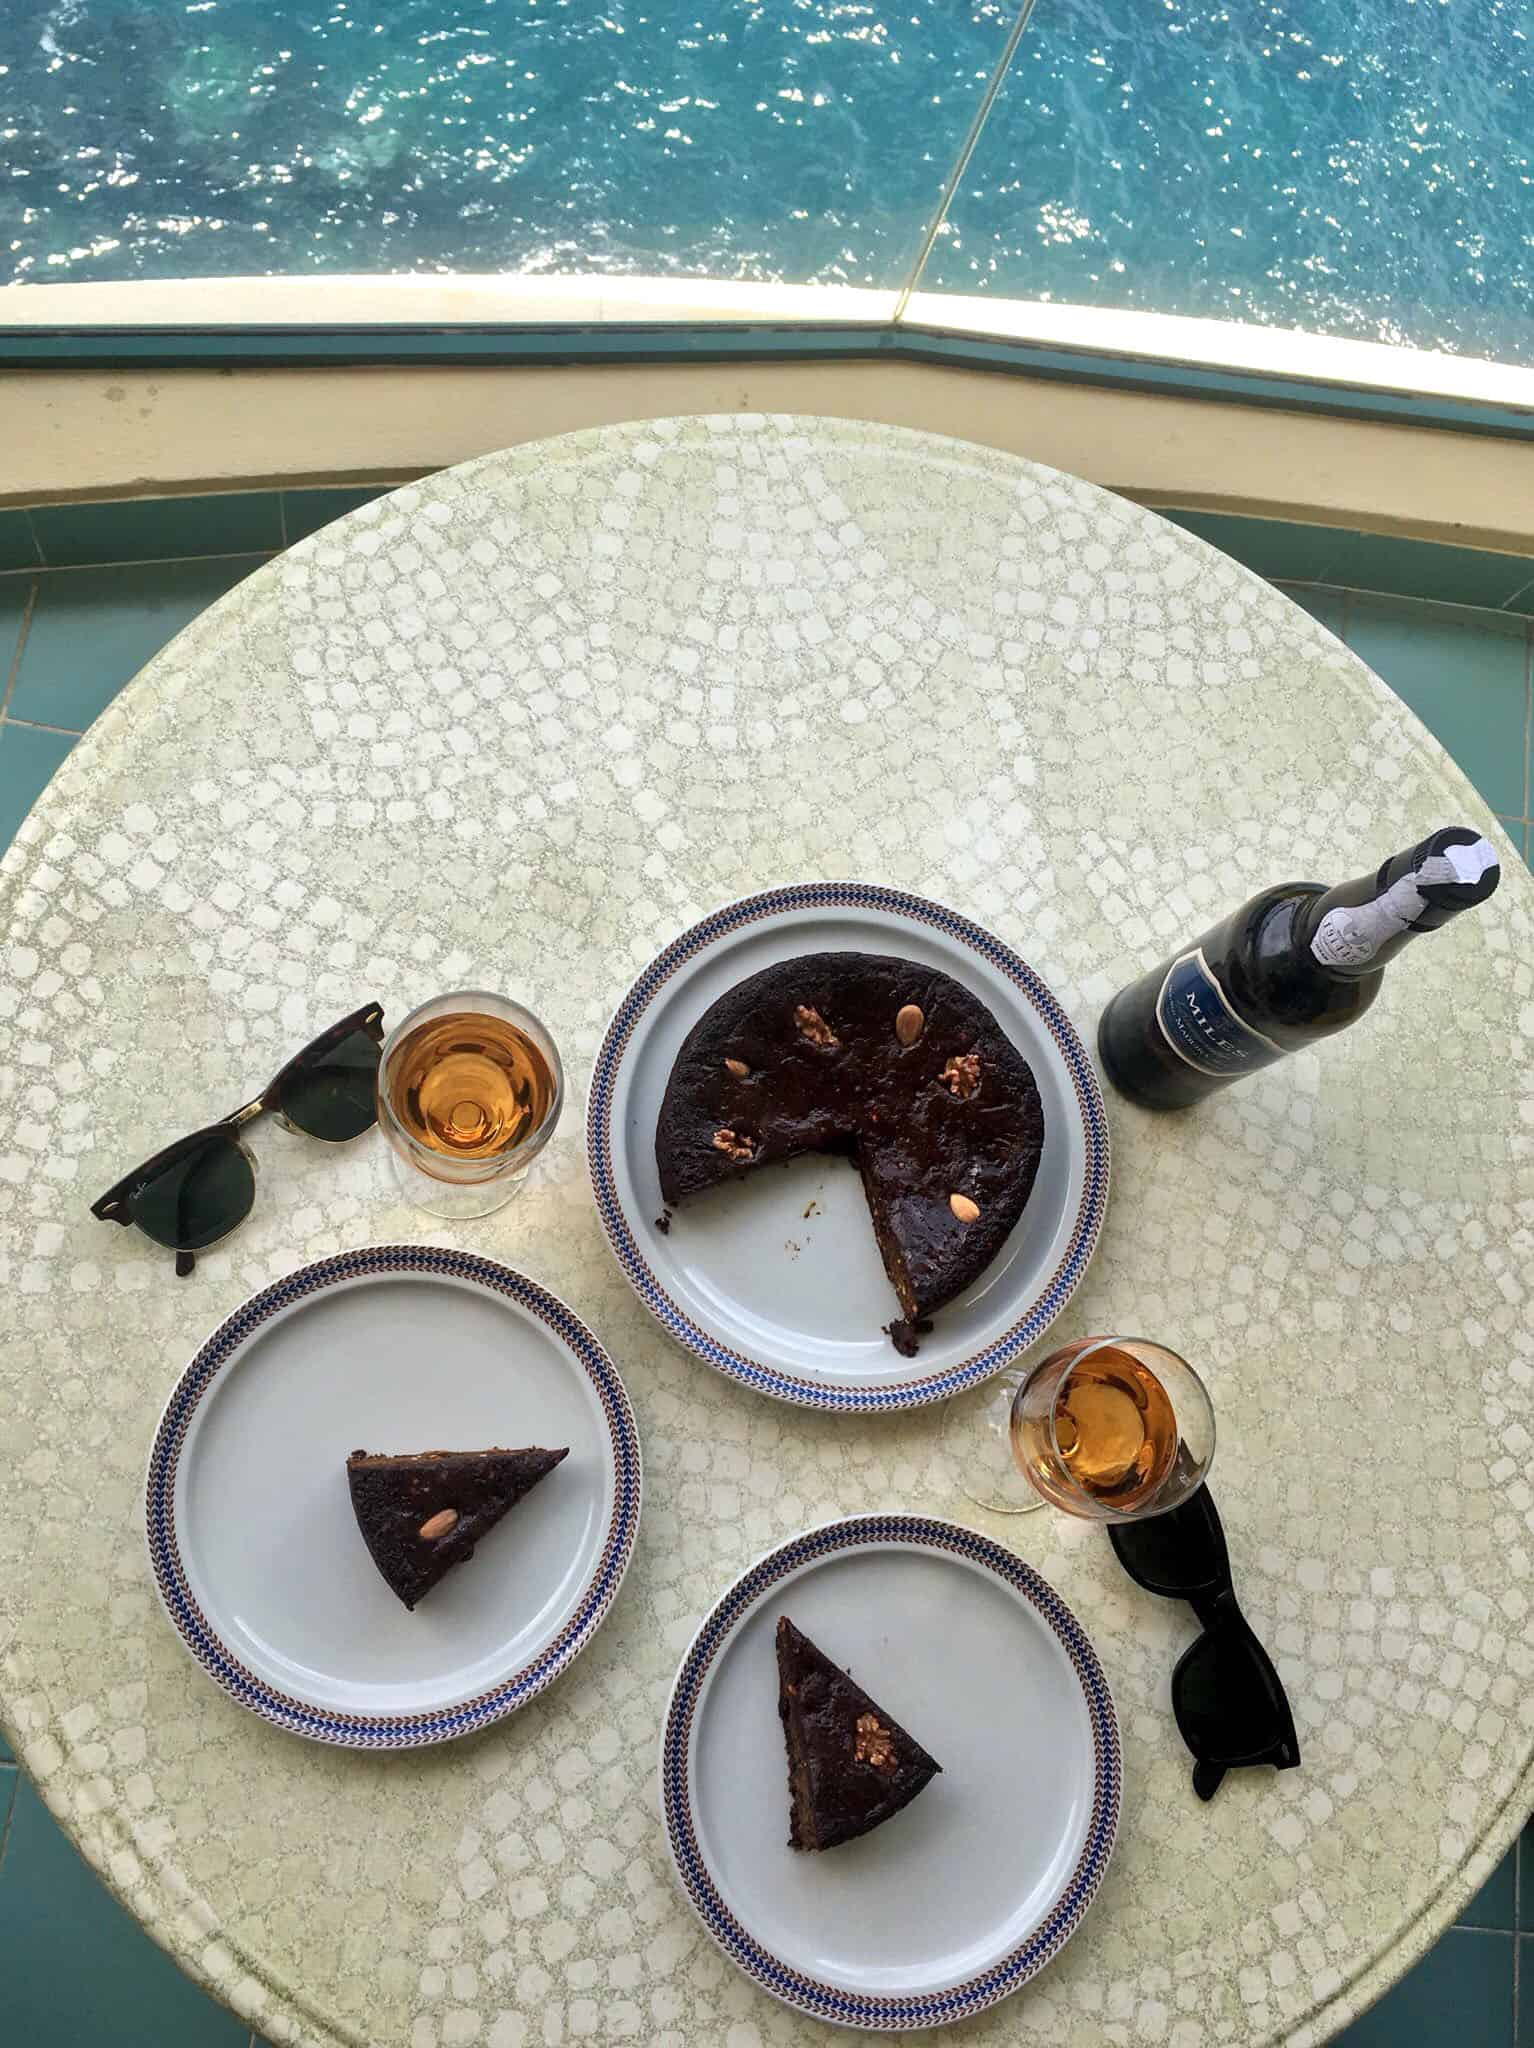 Madeira cake & Madeira wine by the see